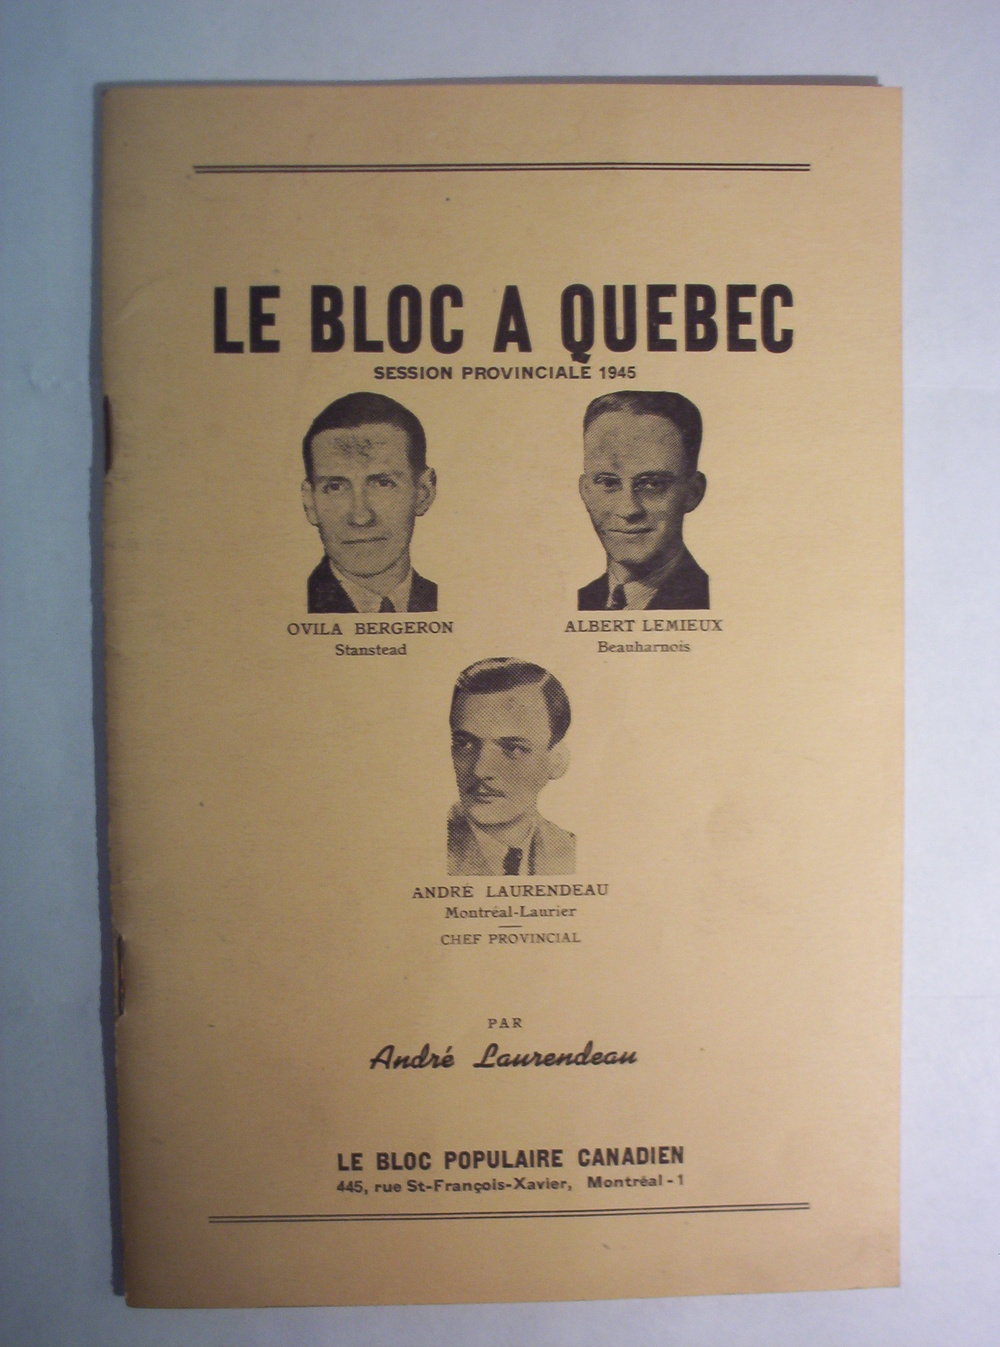 A 1945 Bloc Populaire pamphlet, via Wikipedia.